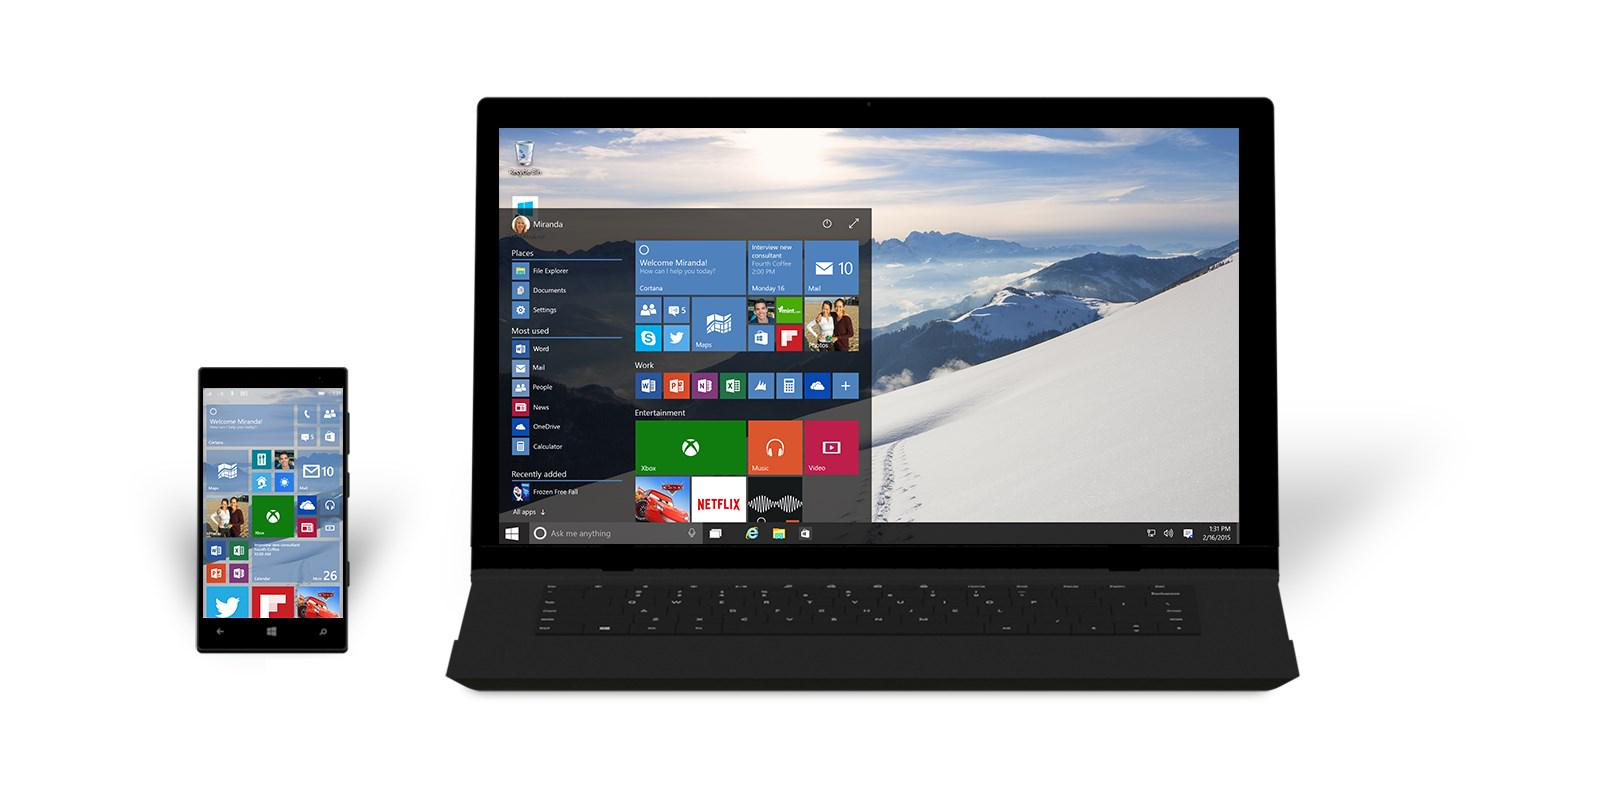 RT @TheNextWeb: Not everyone will get Windows 10 on July 29 http://t.co/TQpXtxQPbj http://t.co/3tDZZ4tcoE